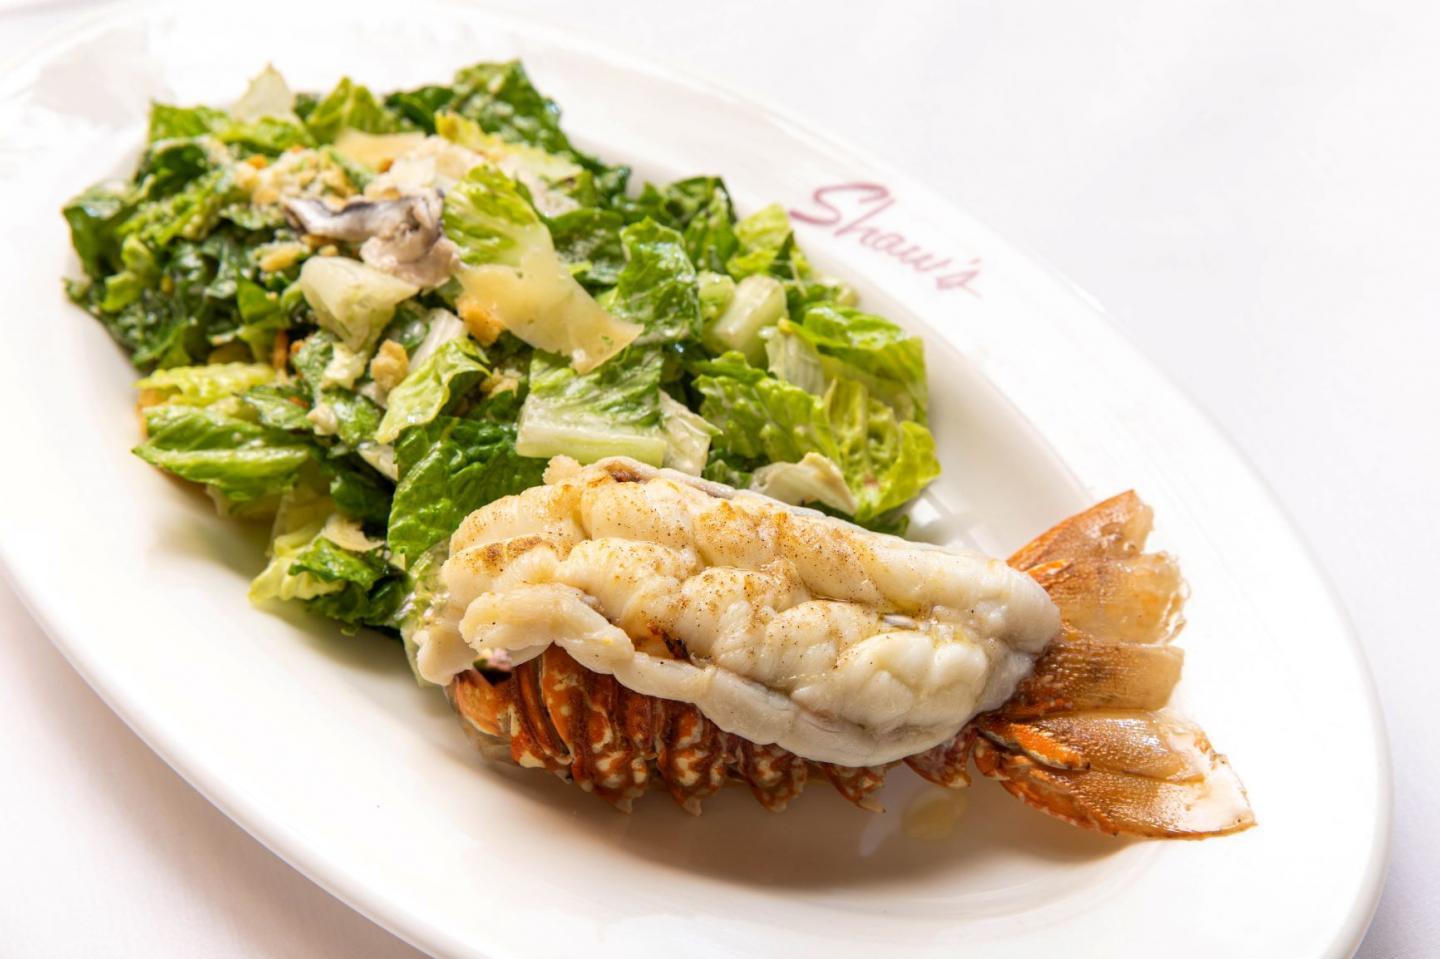 Shaw's salad with lobster tale